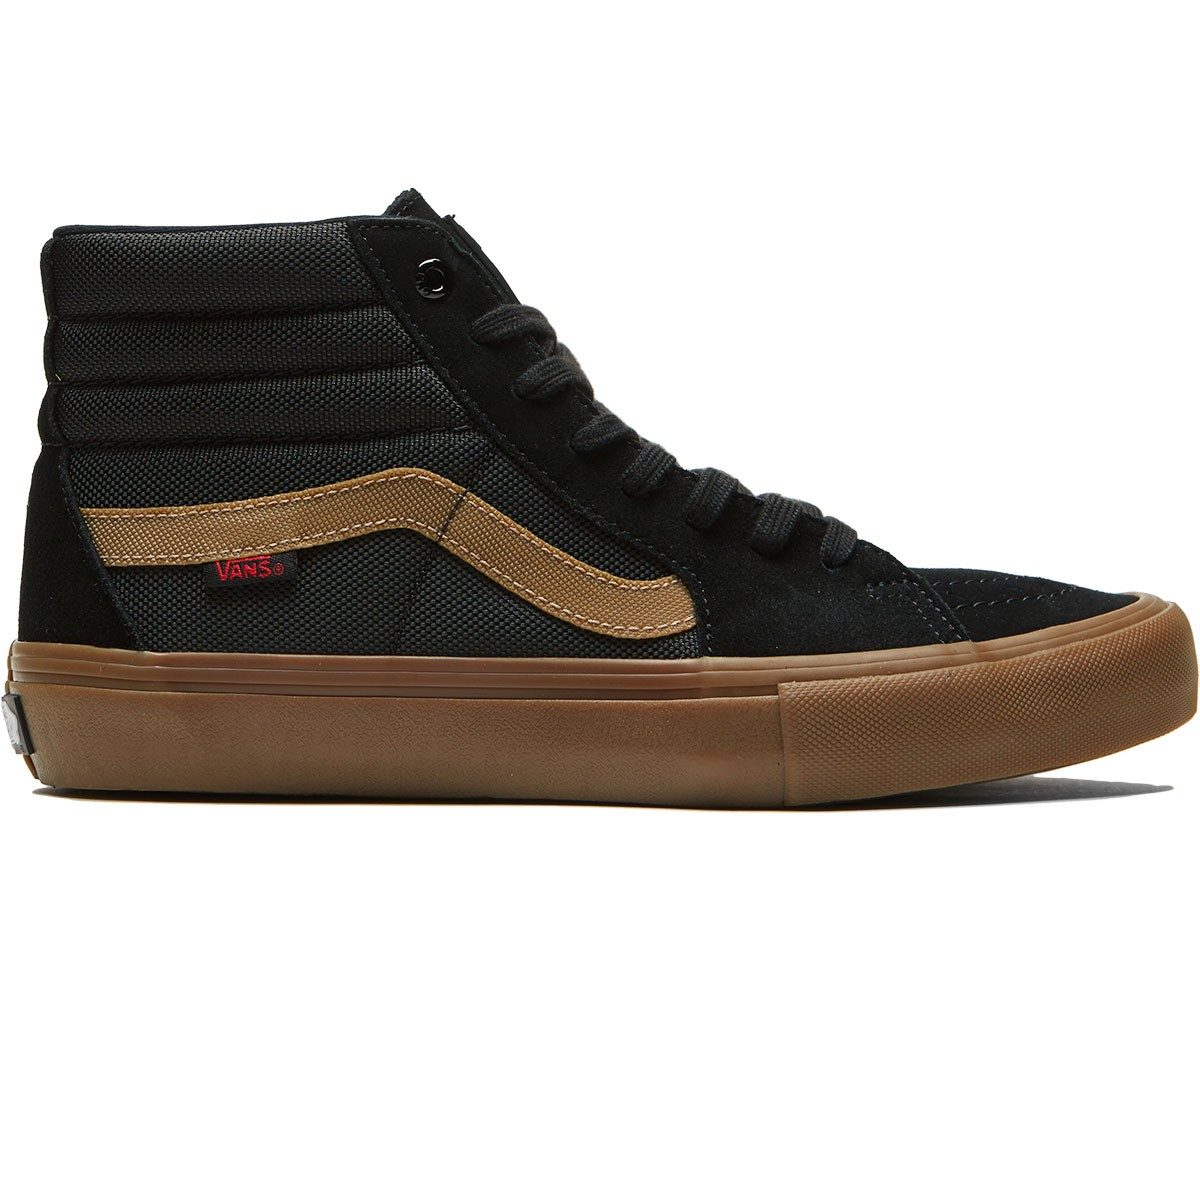 Vans X Thrasher Sk8 Hi Pro Shoes - Thrasher Black Gum - 6.5 c31f5abdd